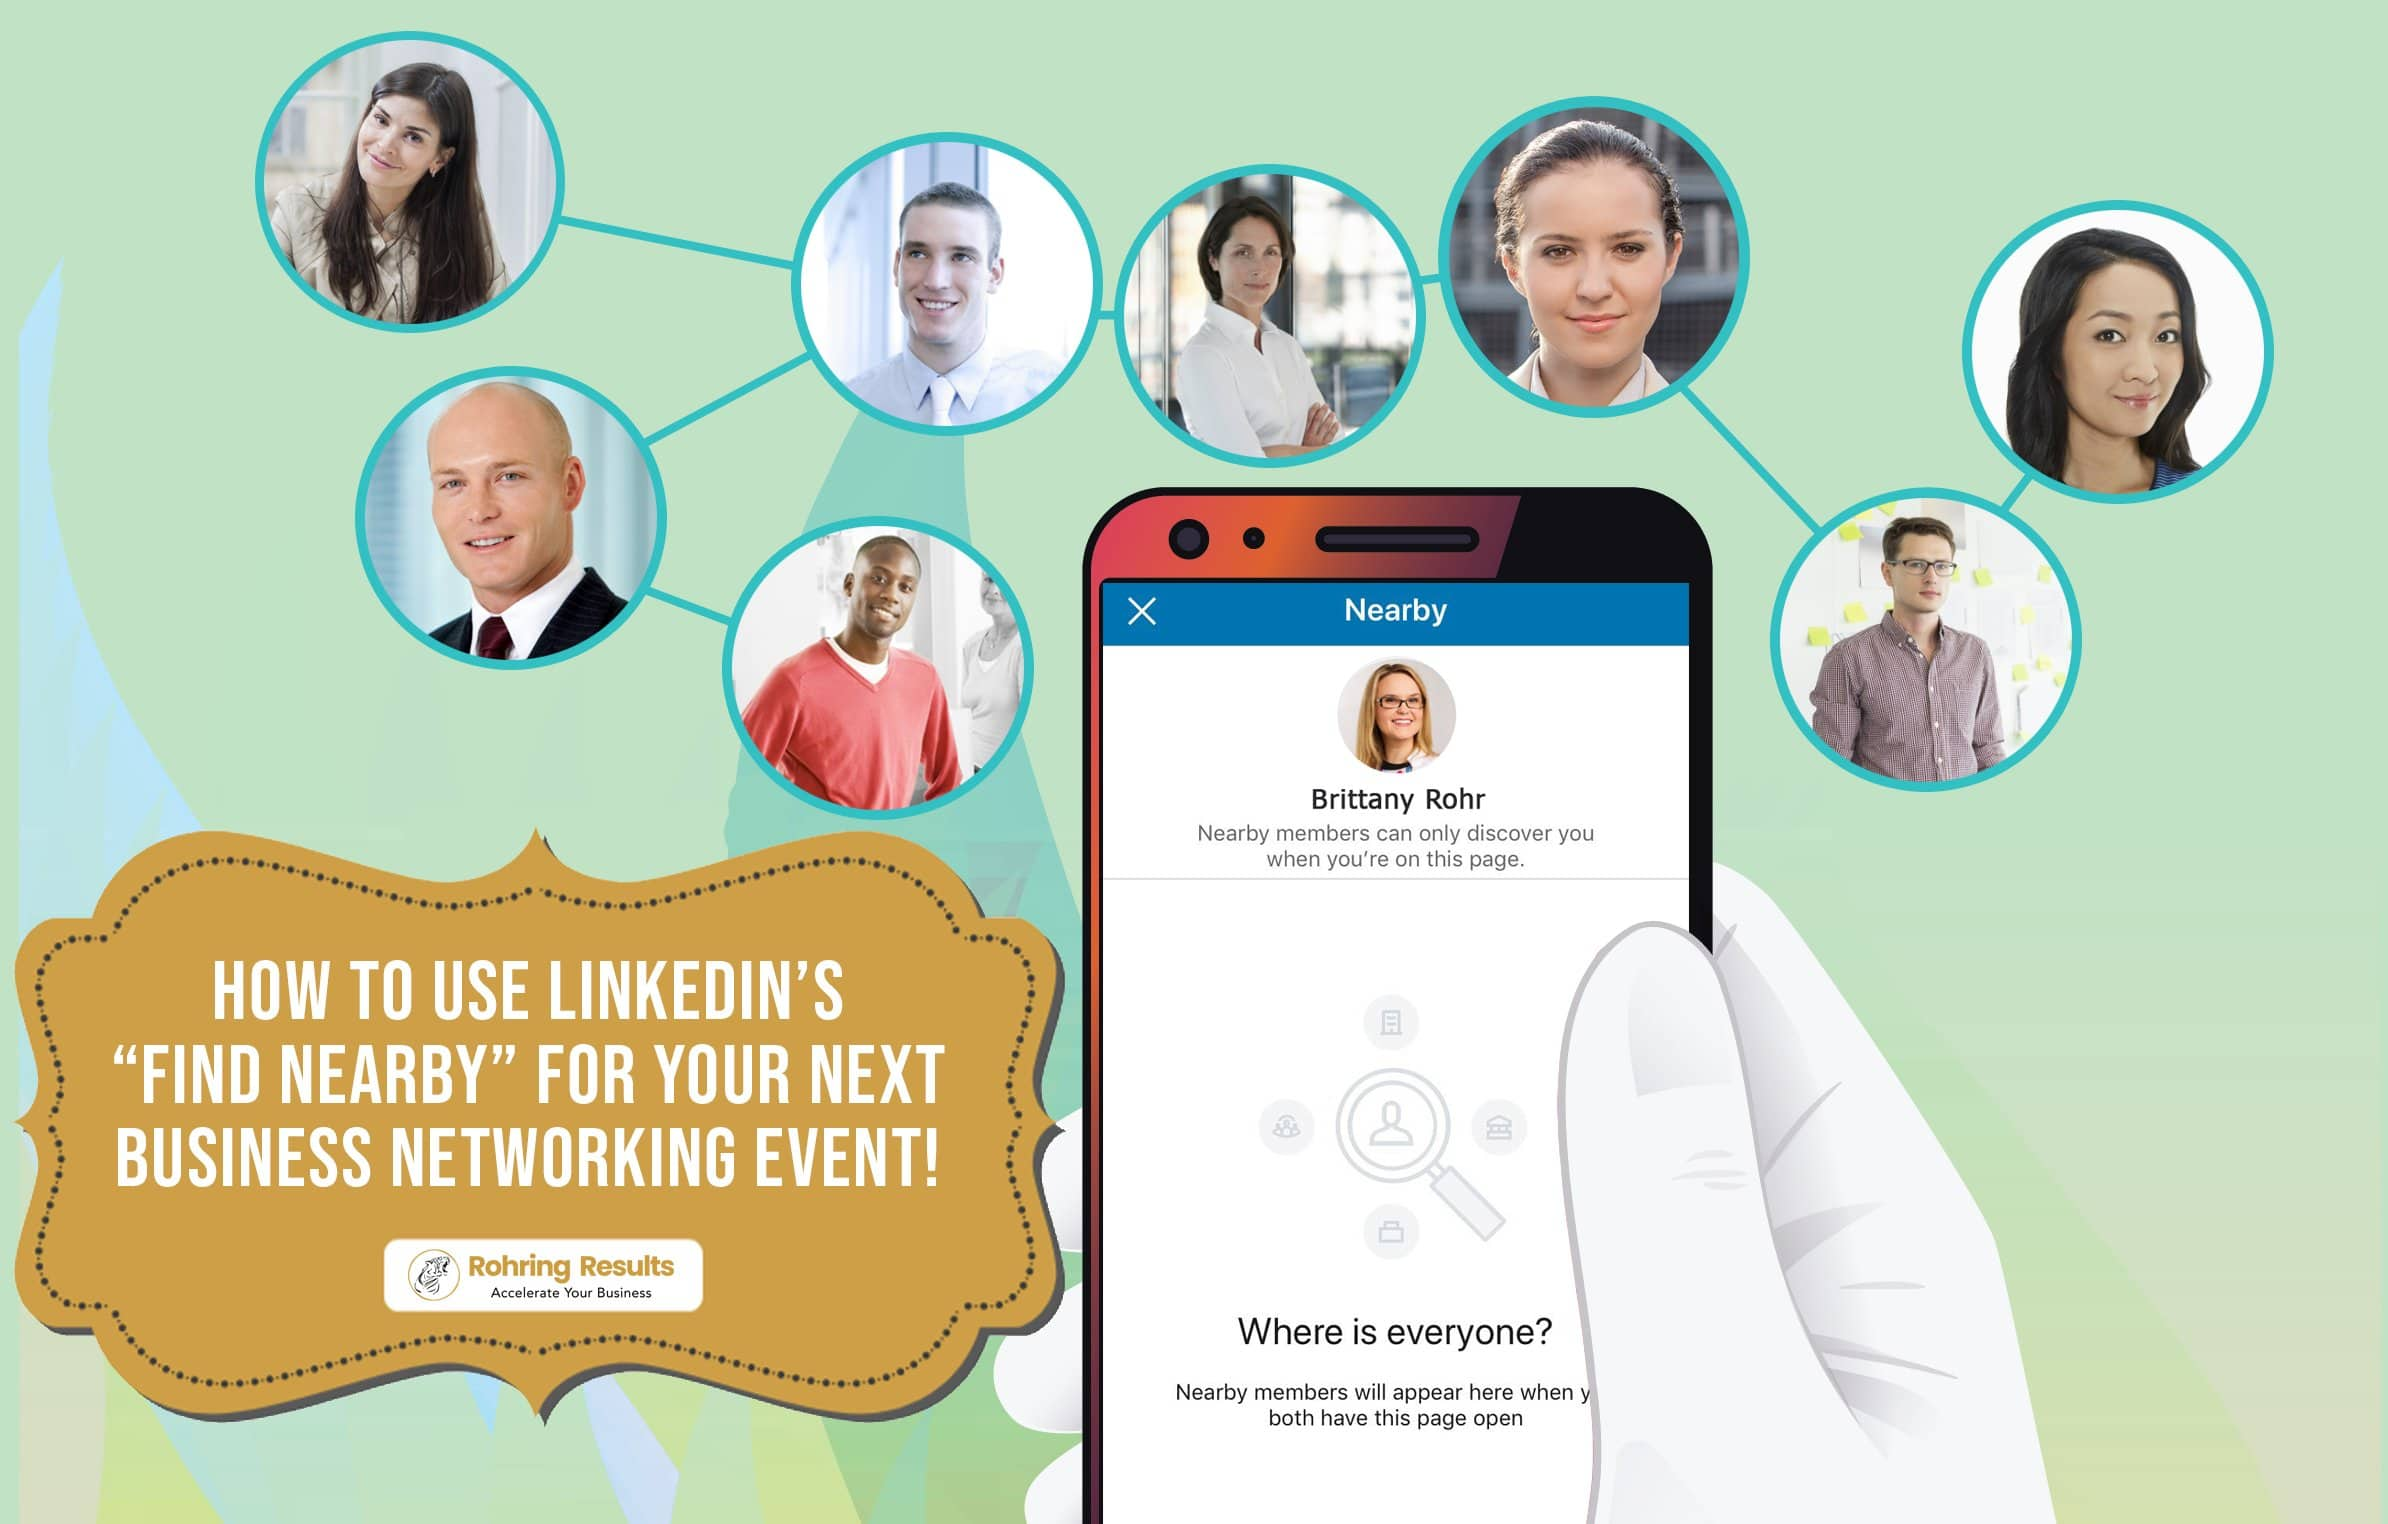 using linkedin for networking events